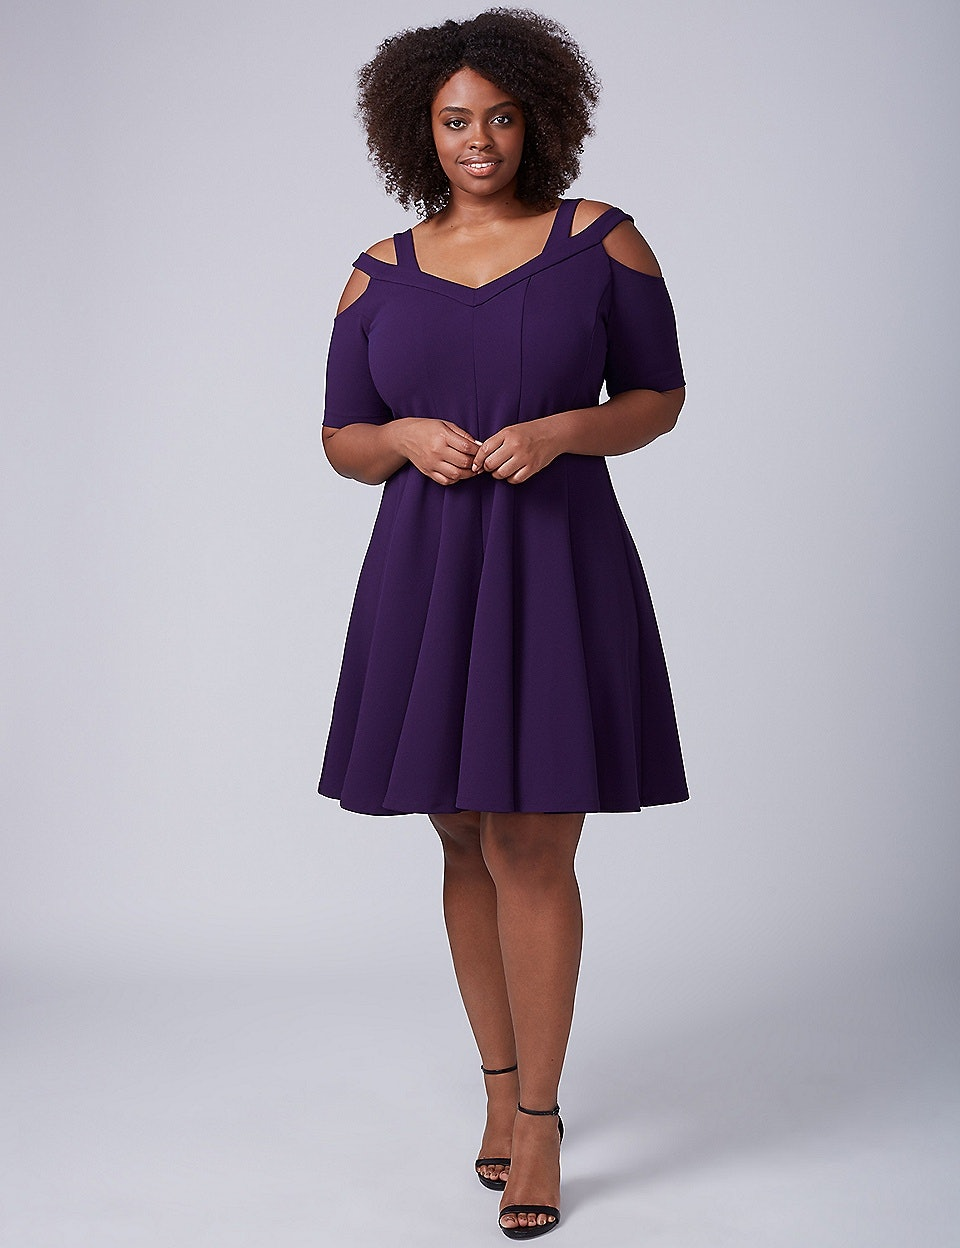 50 Plus Size Holiday Dresses That Deserve A Spot In Your Closet